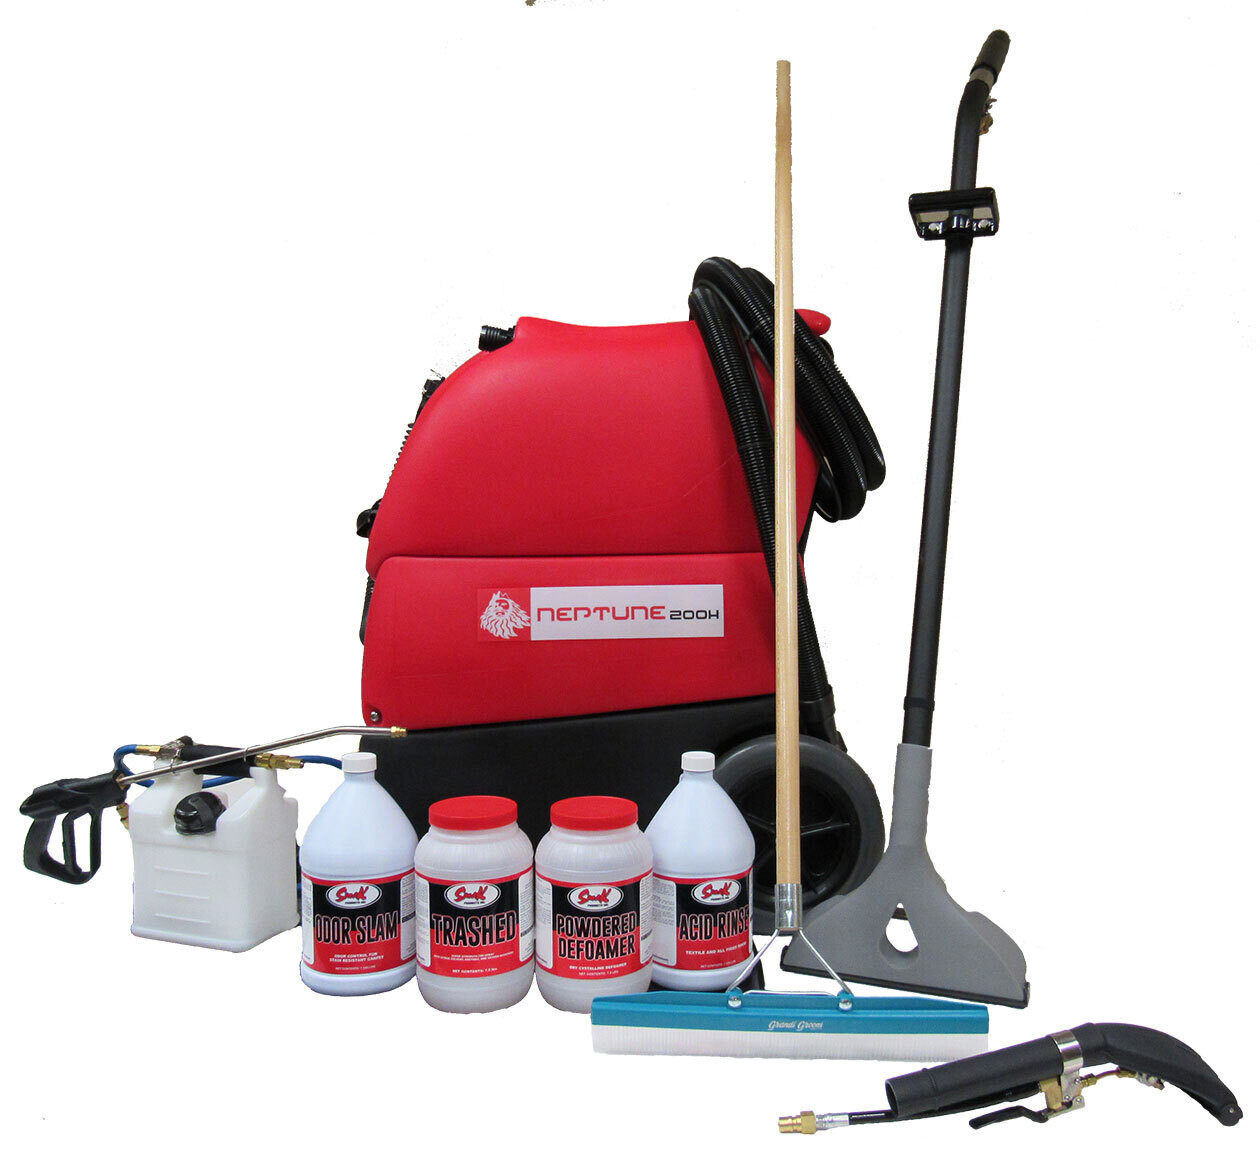 Complete Carpet Cleaning Equipment Package – Neptune 200HSC